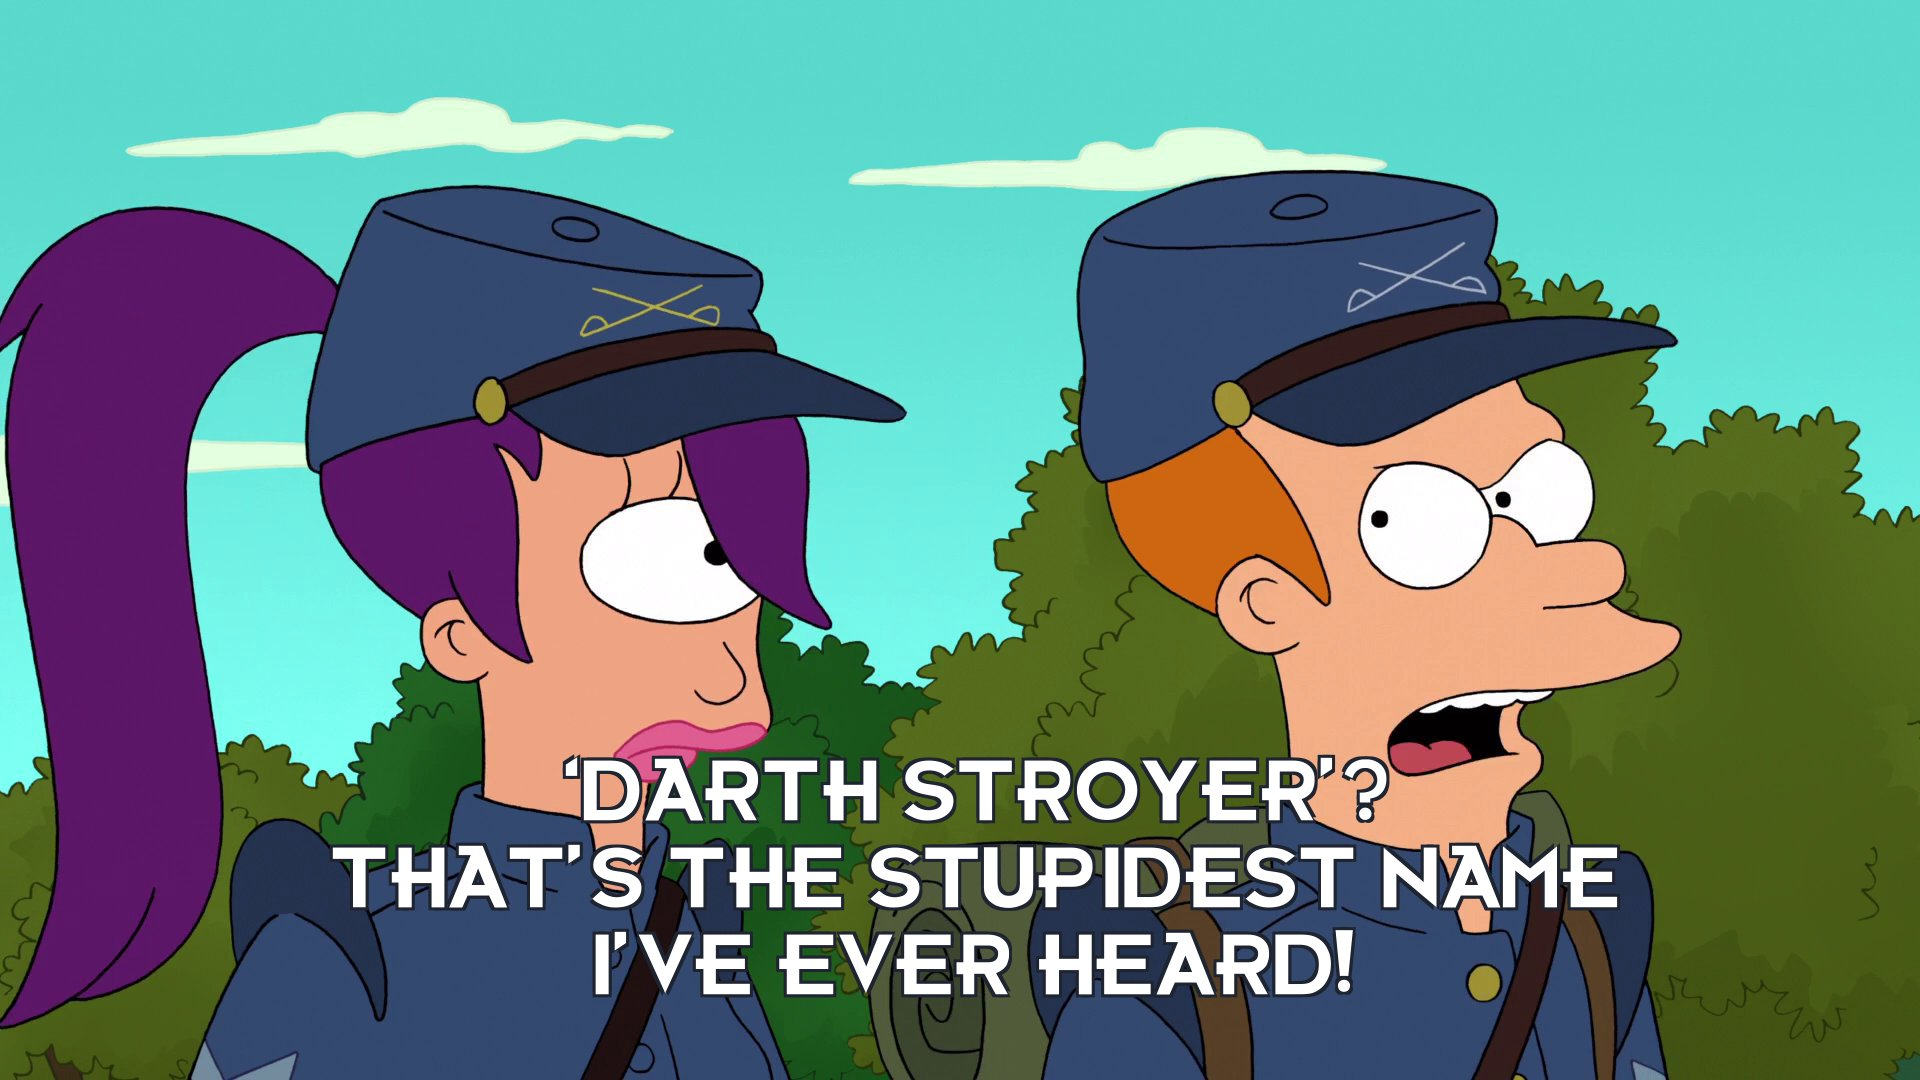 Philip J Fry: 'Darth Stroyer'? That's the stupidest name I've ever heard!